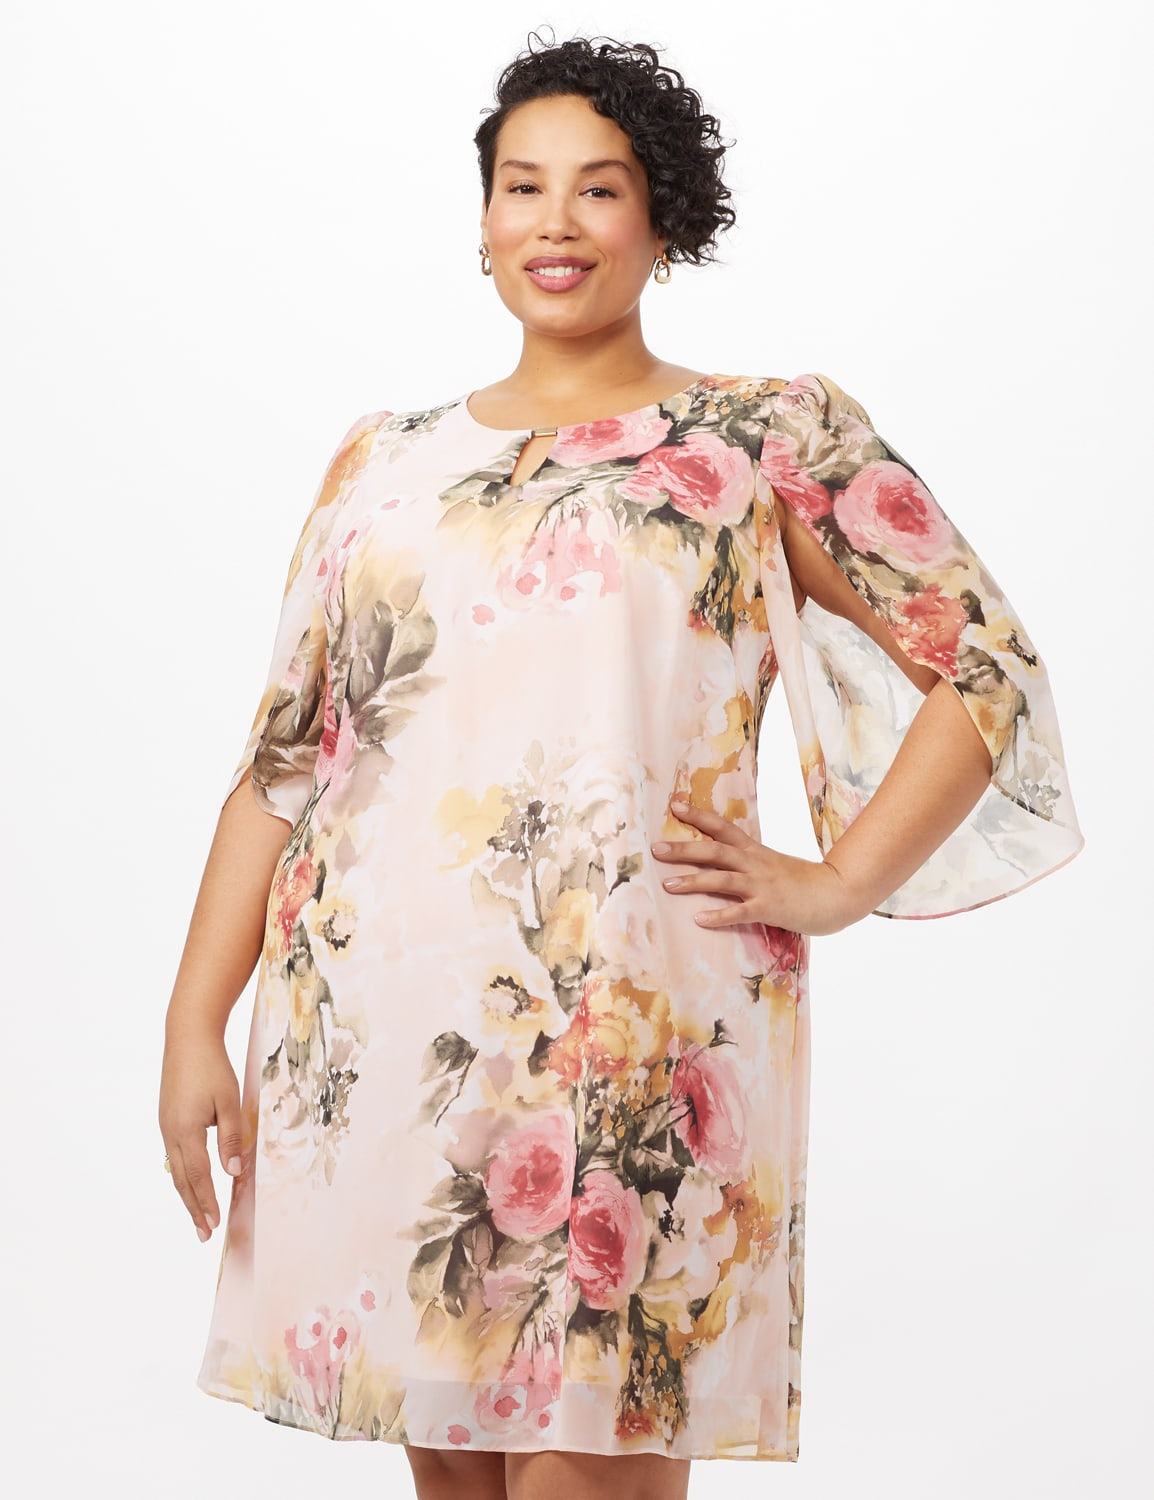 Floral Chiffon Dress with Keyhole Neckline - Rose - Front